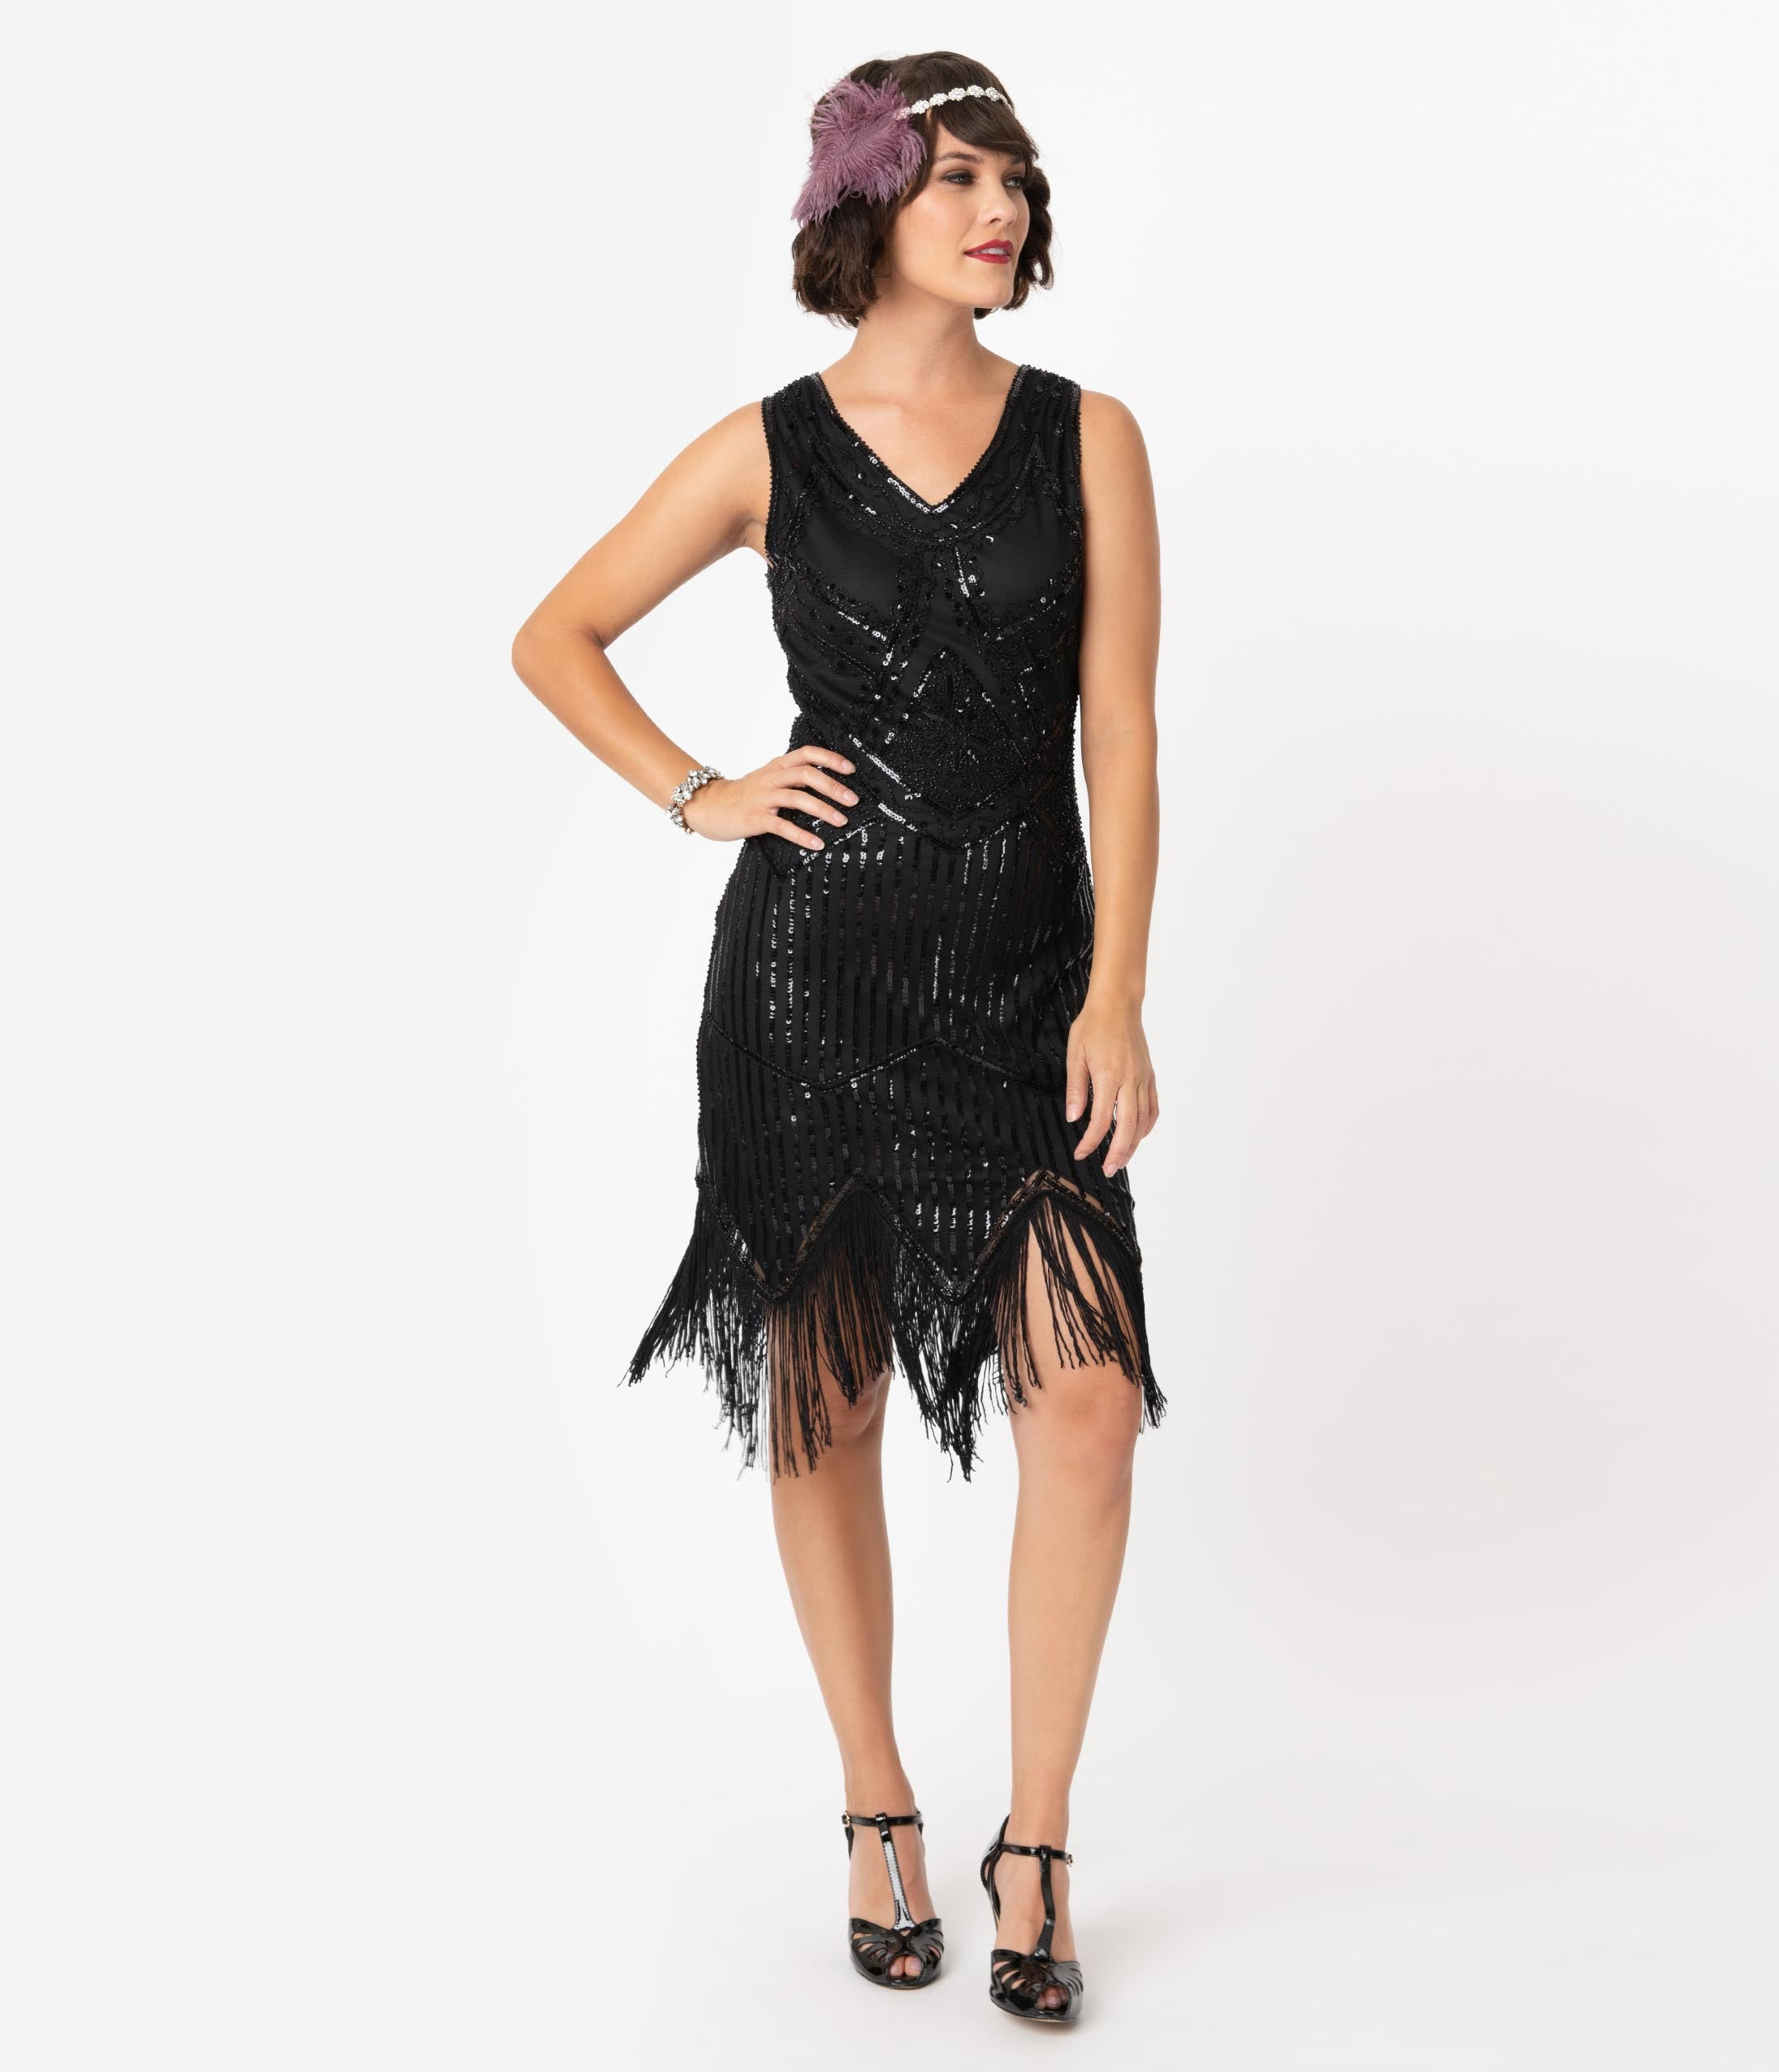 Best 1920s Prom Dresses – Great Gatsby Style Gowns Unique Vintage 1920S Black Beaded Sequin Juliette Fringe Flapper Dress $98.00 AT vintagedancer.com